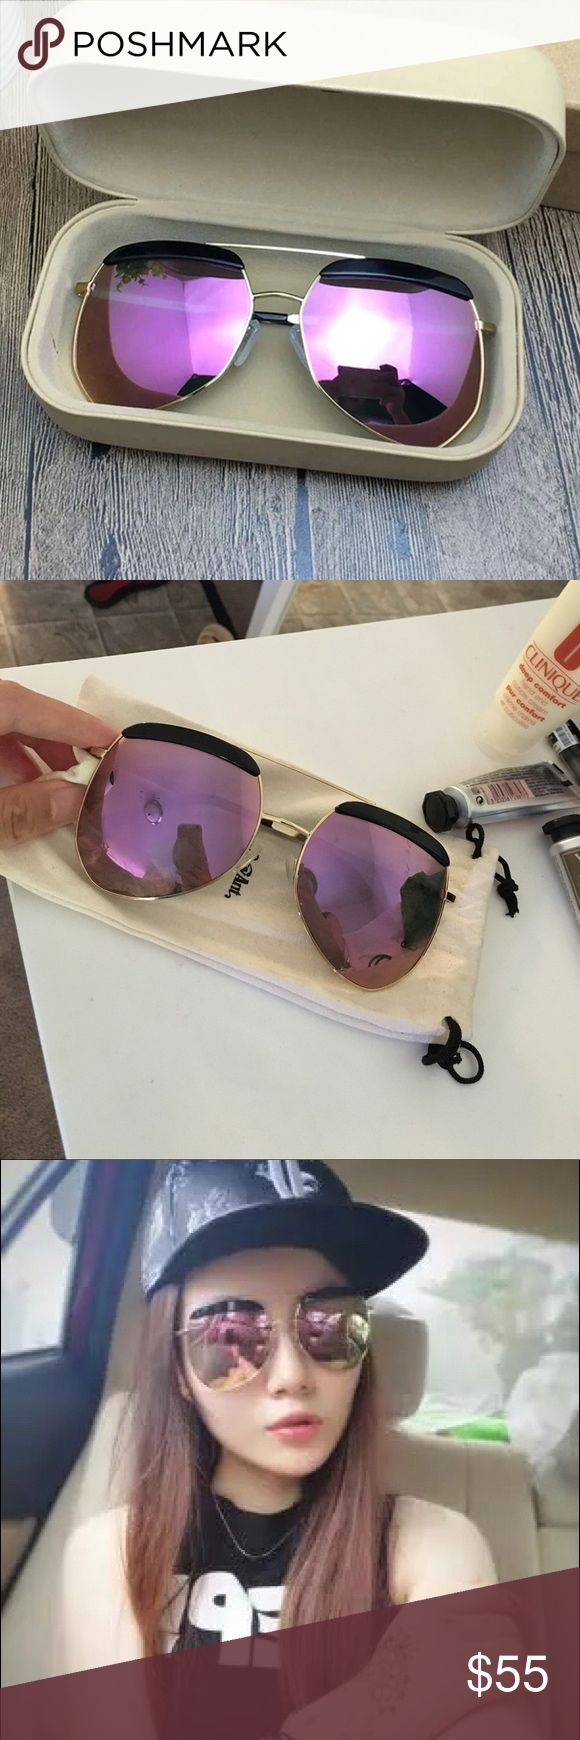 grey ant sunglasses Super cool. Dust bag included.  No box. 80% new Accessories Sunglasses